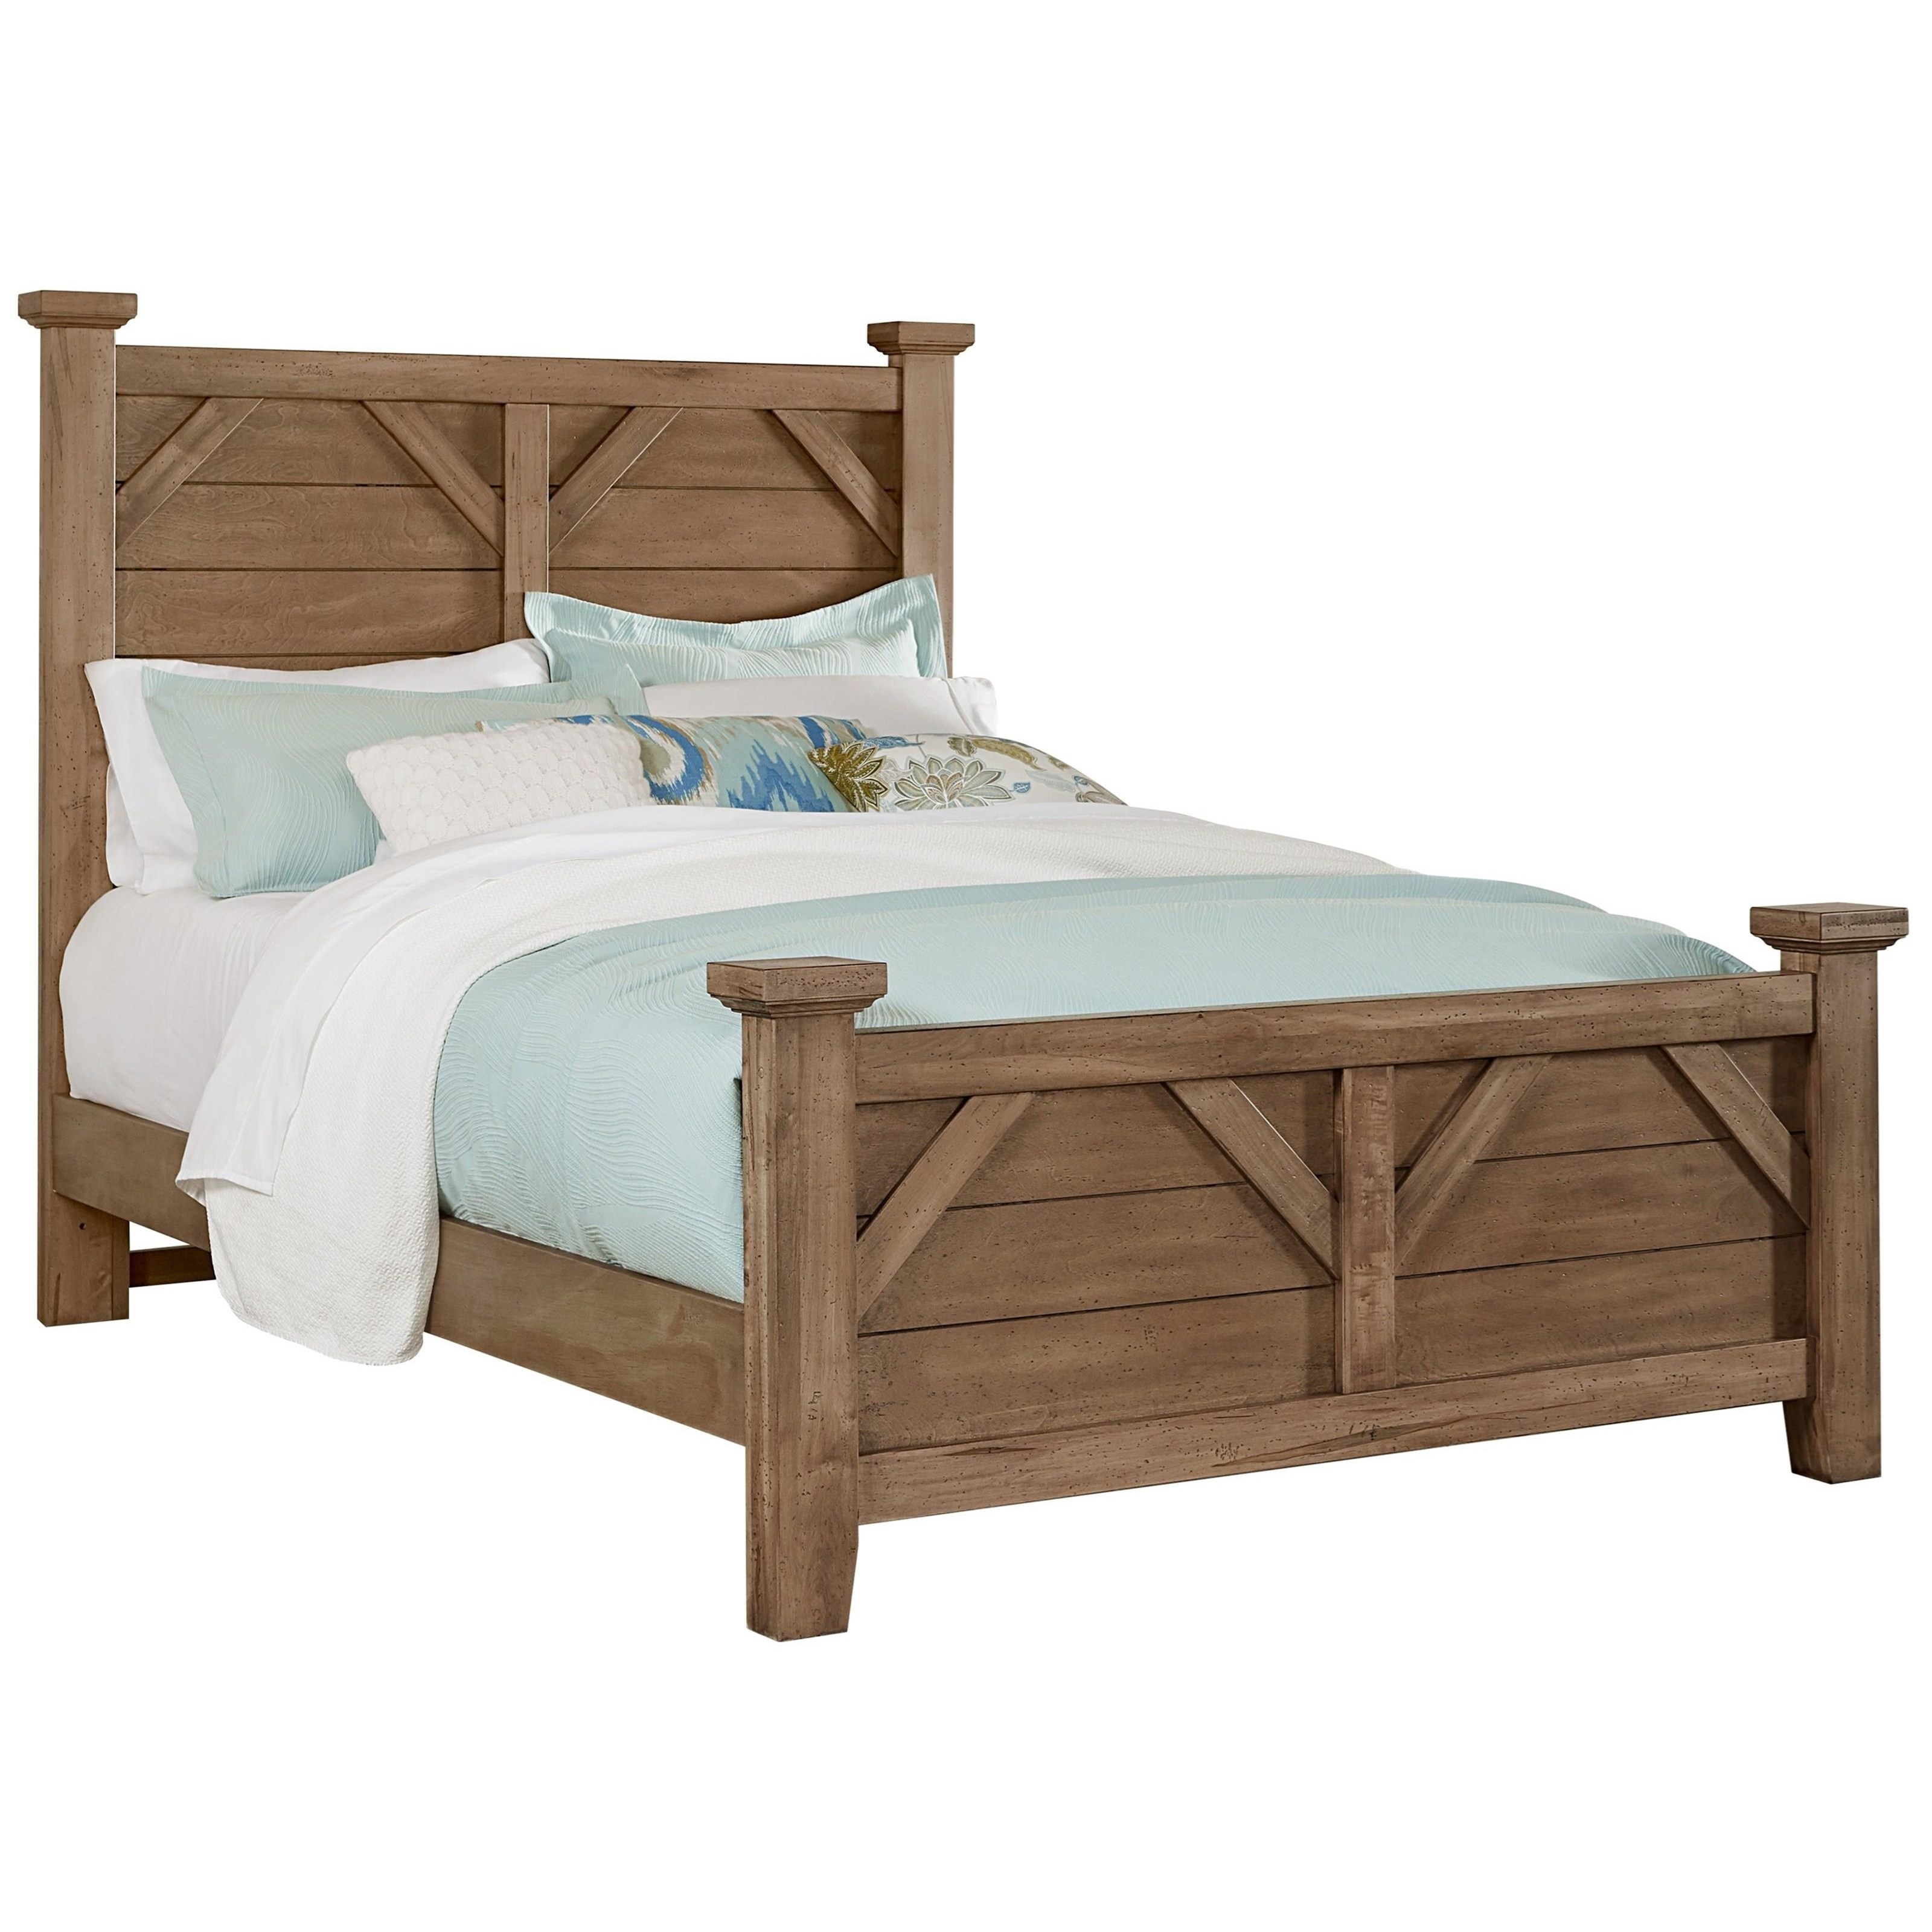 Chestnut Creek King Plank Bed by Centennial Solids at Esprit Decor Home Furnishings